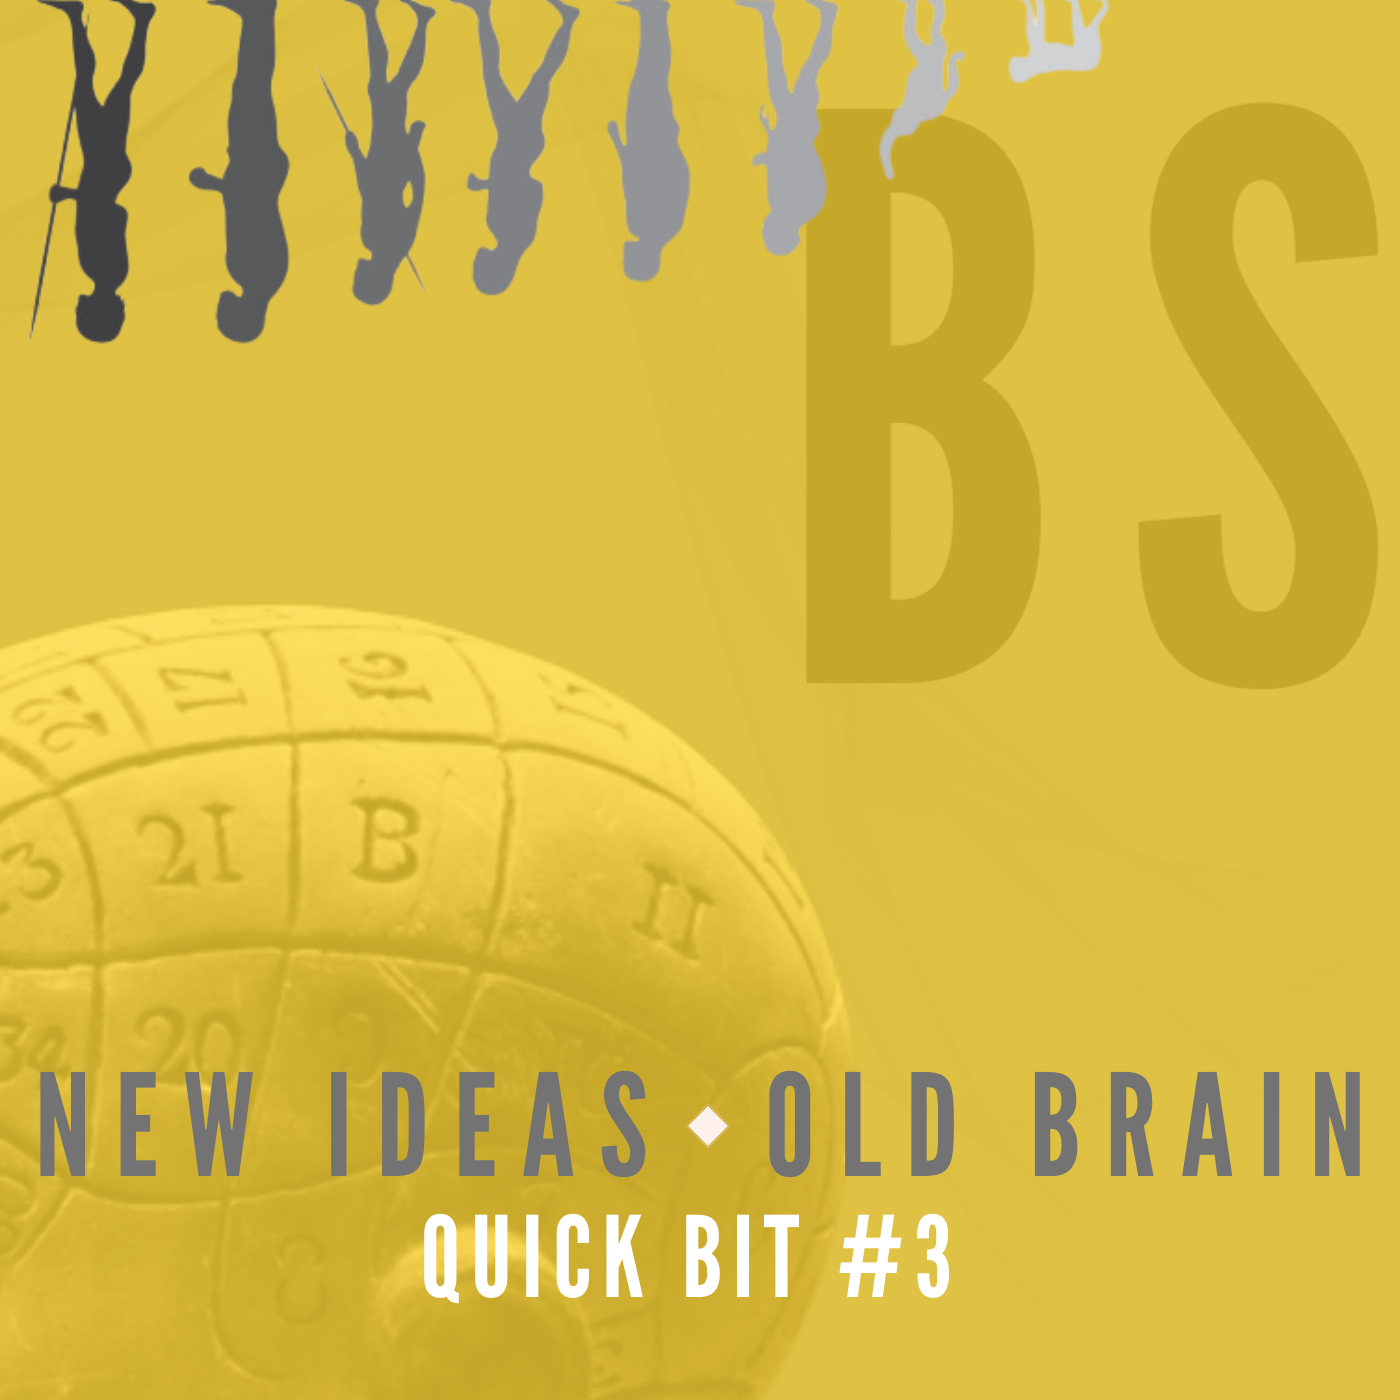 New Ideas, Old Brain Quick Bit #3: Employee of the Month for Misbehaving